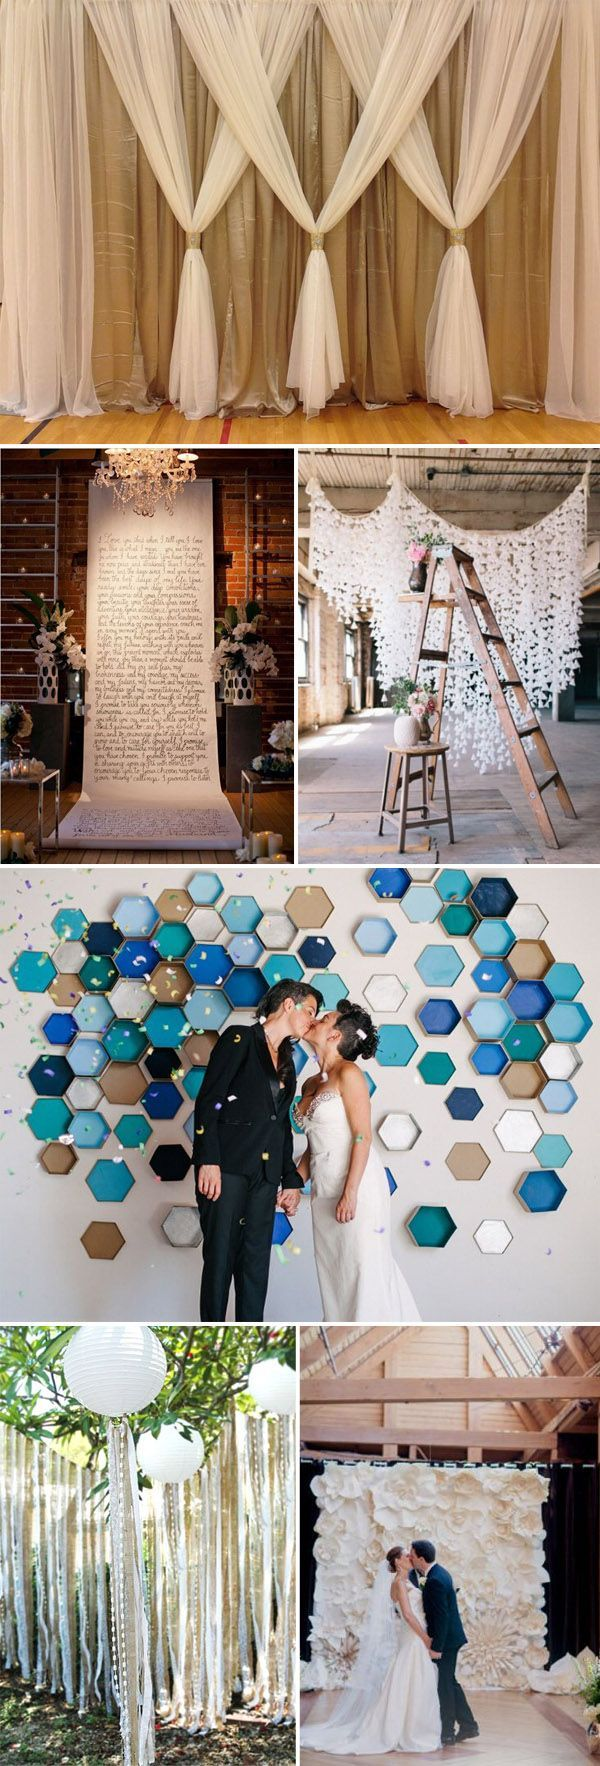 Wedding decorations backdrop  Top  Unique Backdrops for Wedding Ceremony Ideas  DIY wedding